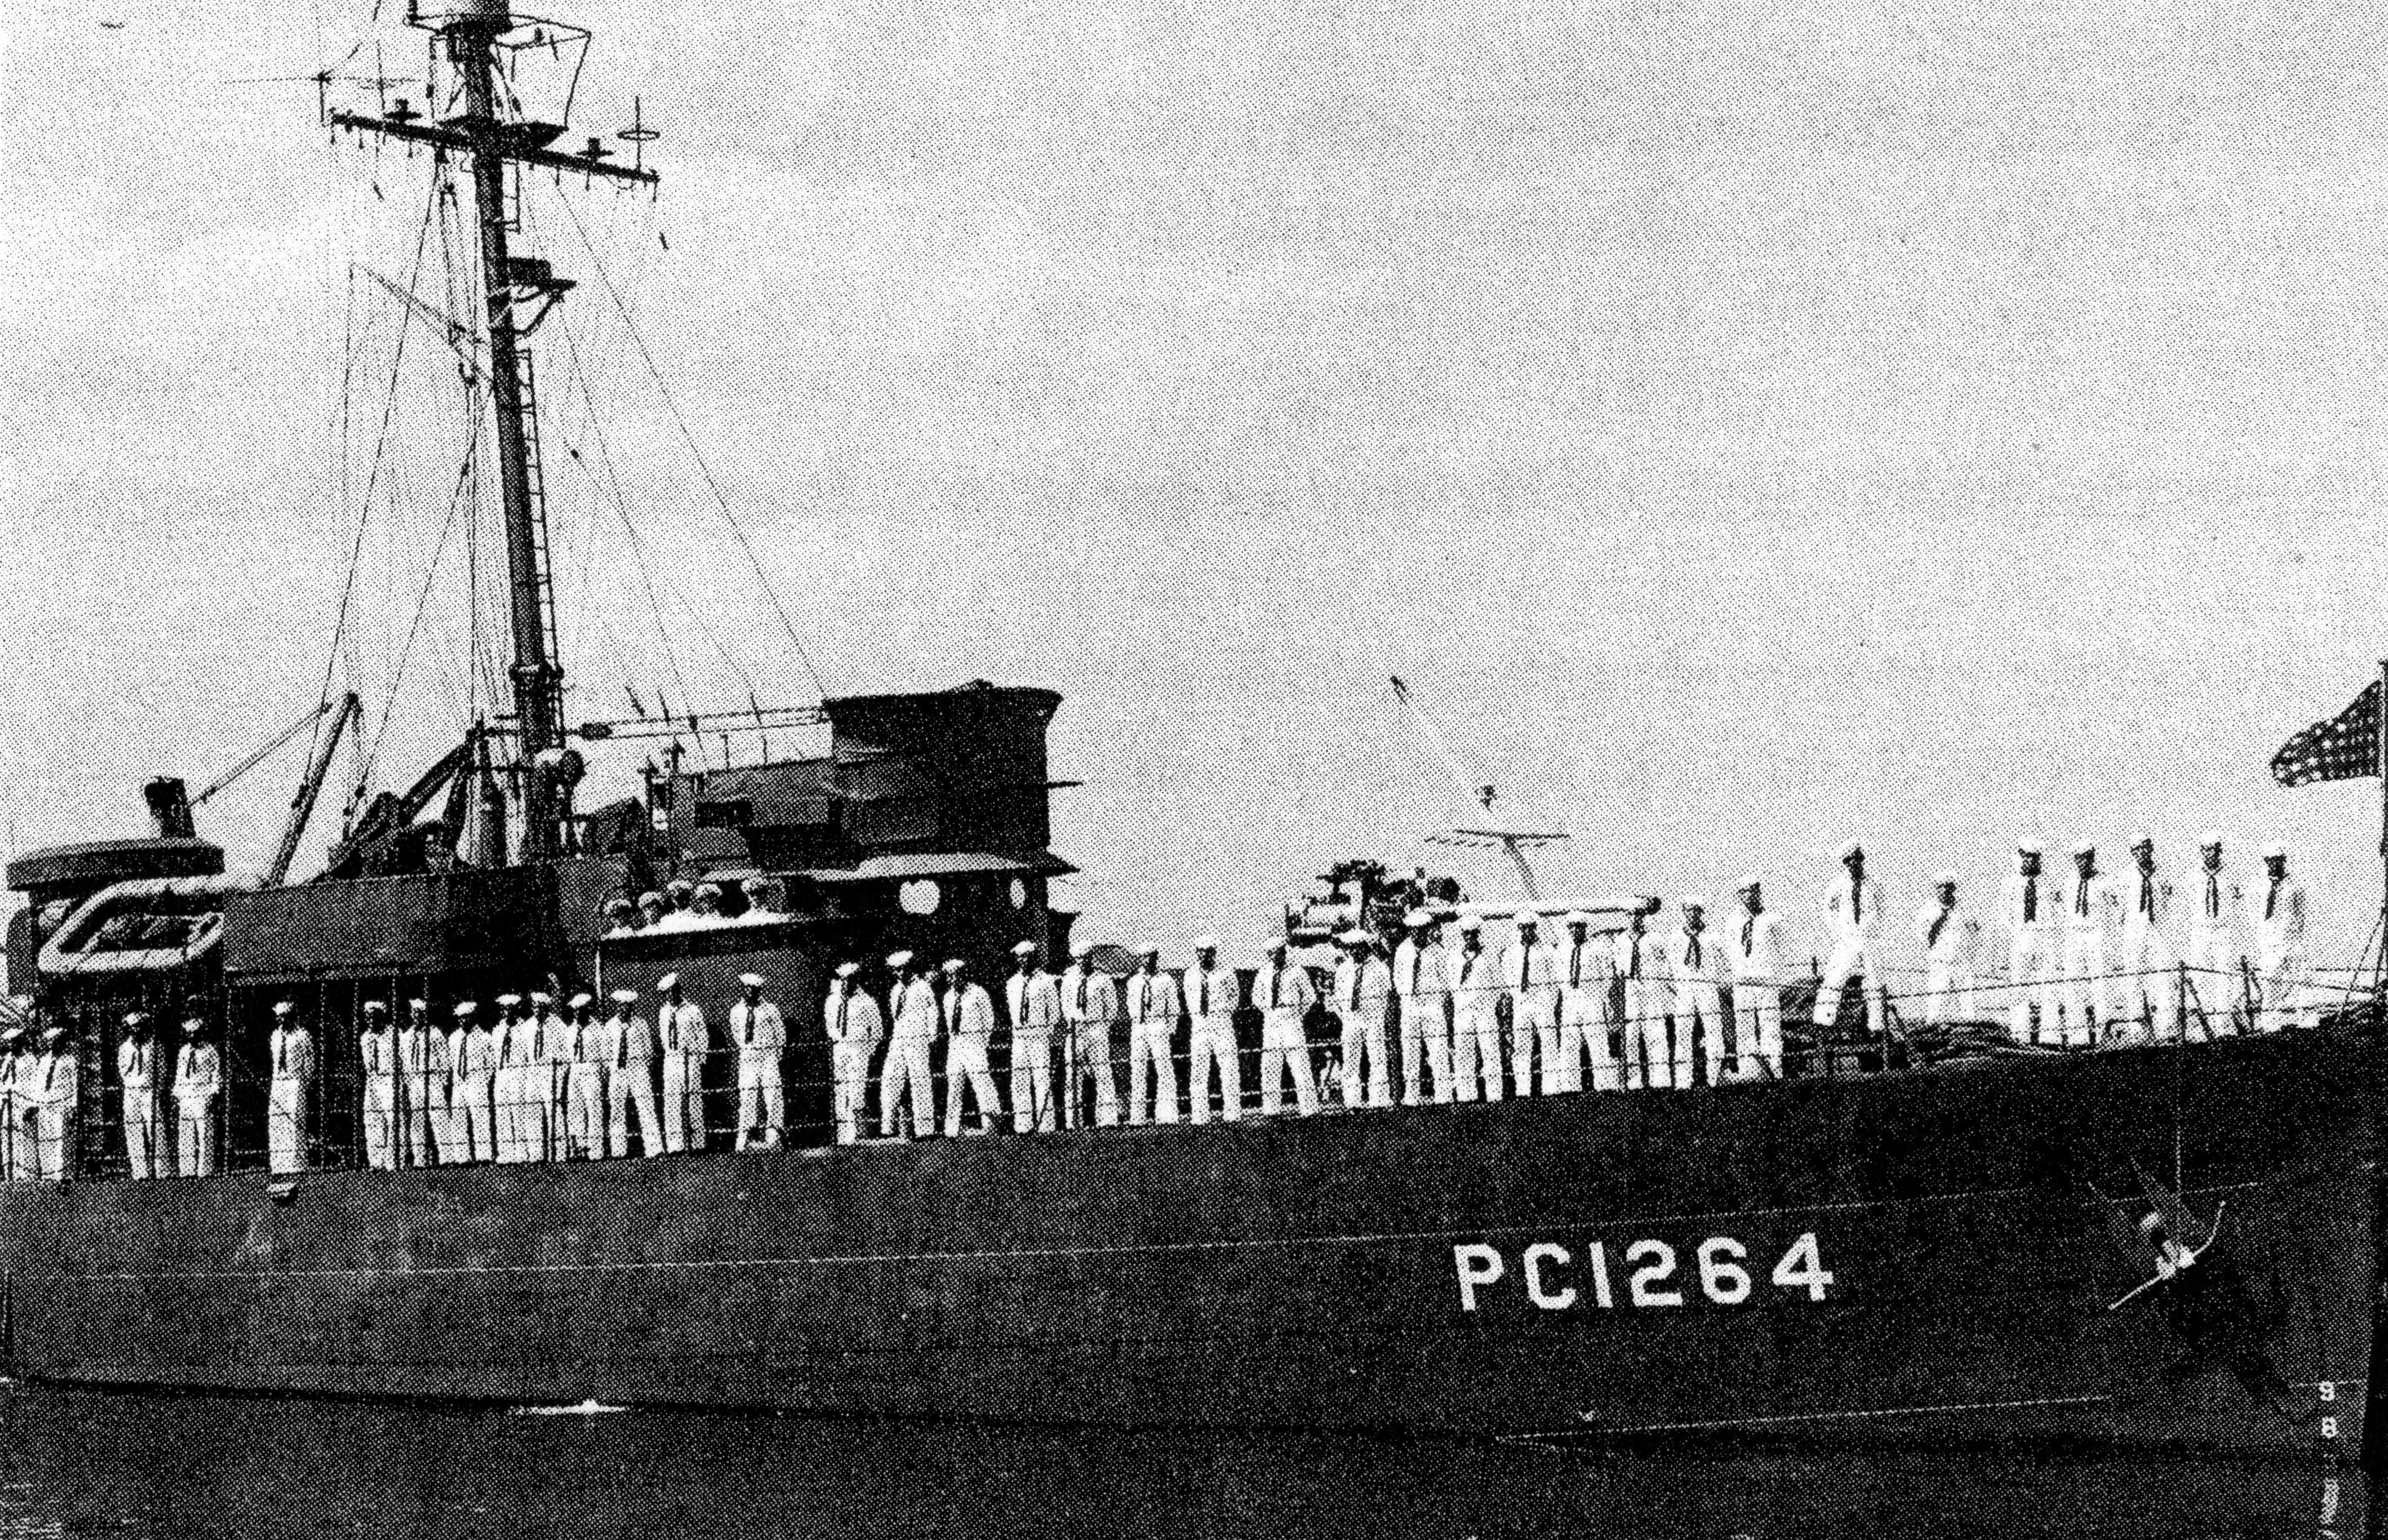 File:USS PC-1264 in port.jpg